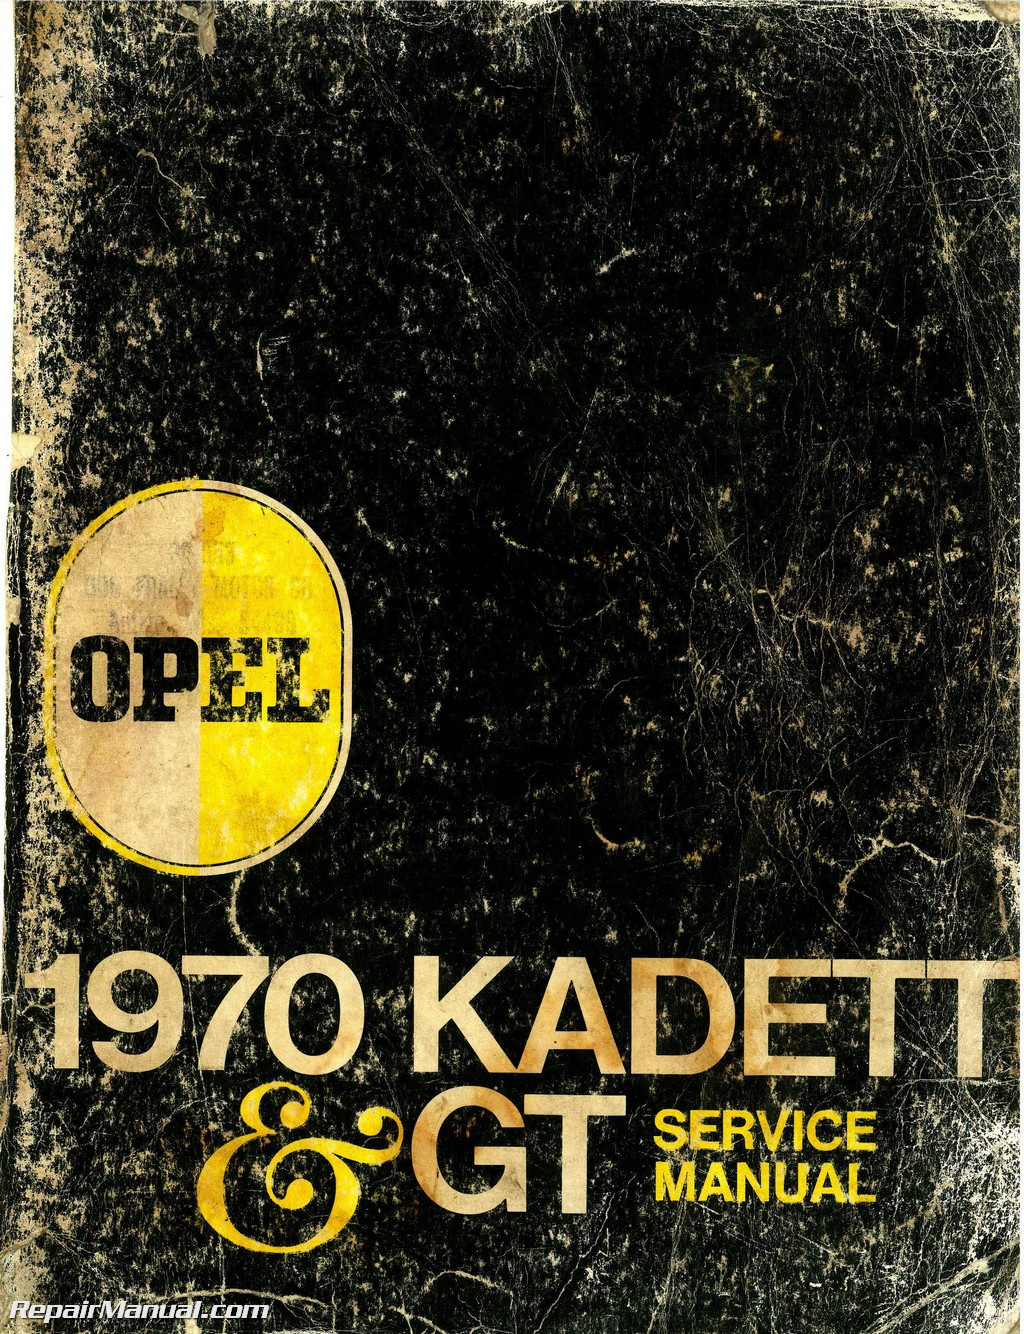 1970 opel kadett & gt service manual 1970 chevrolet wiring diagram 1970 opel gt wiring diagram #22